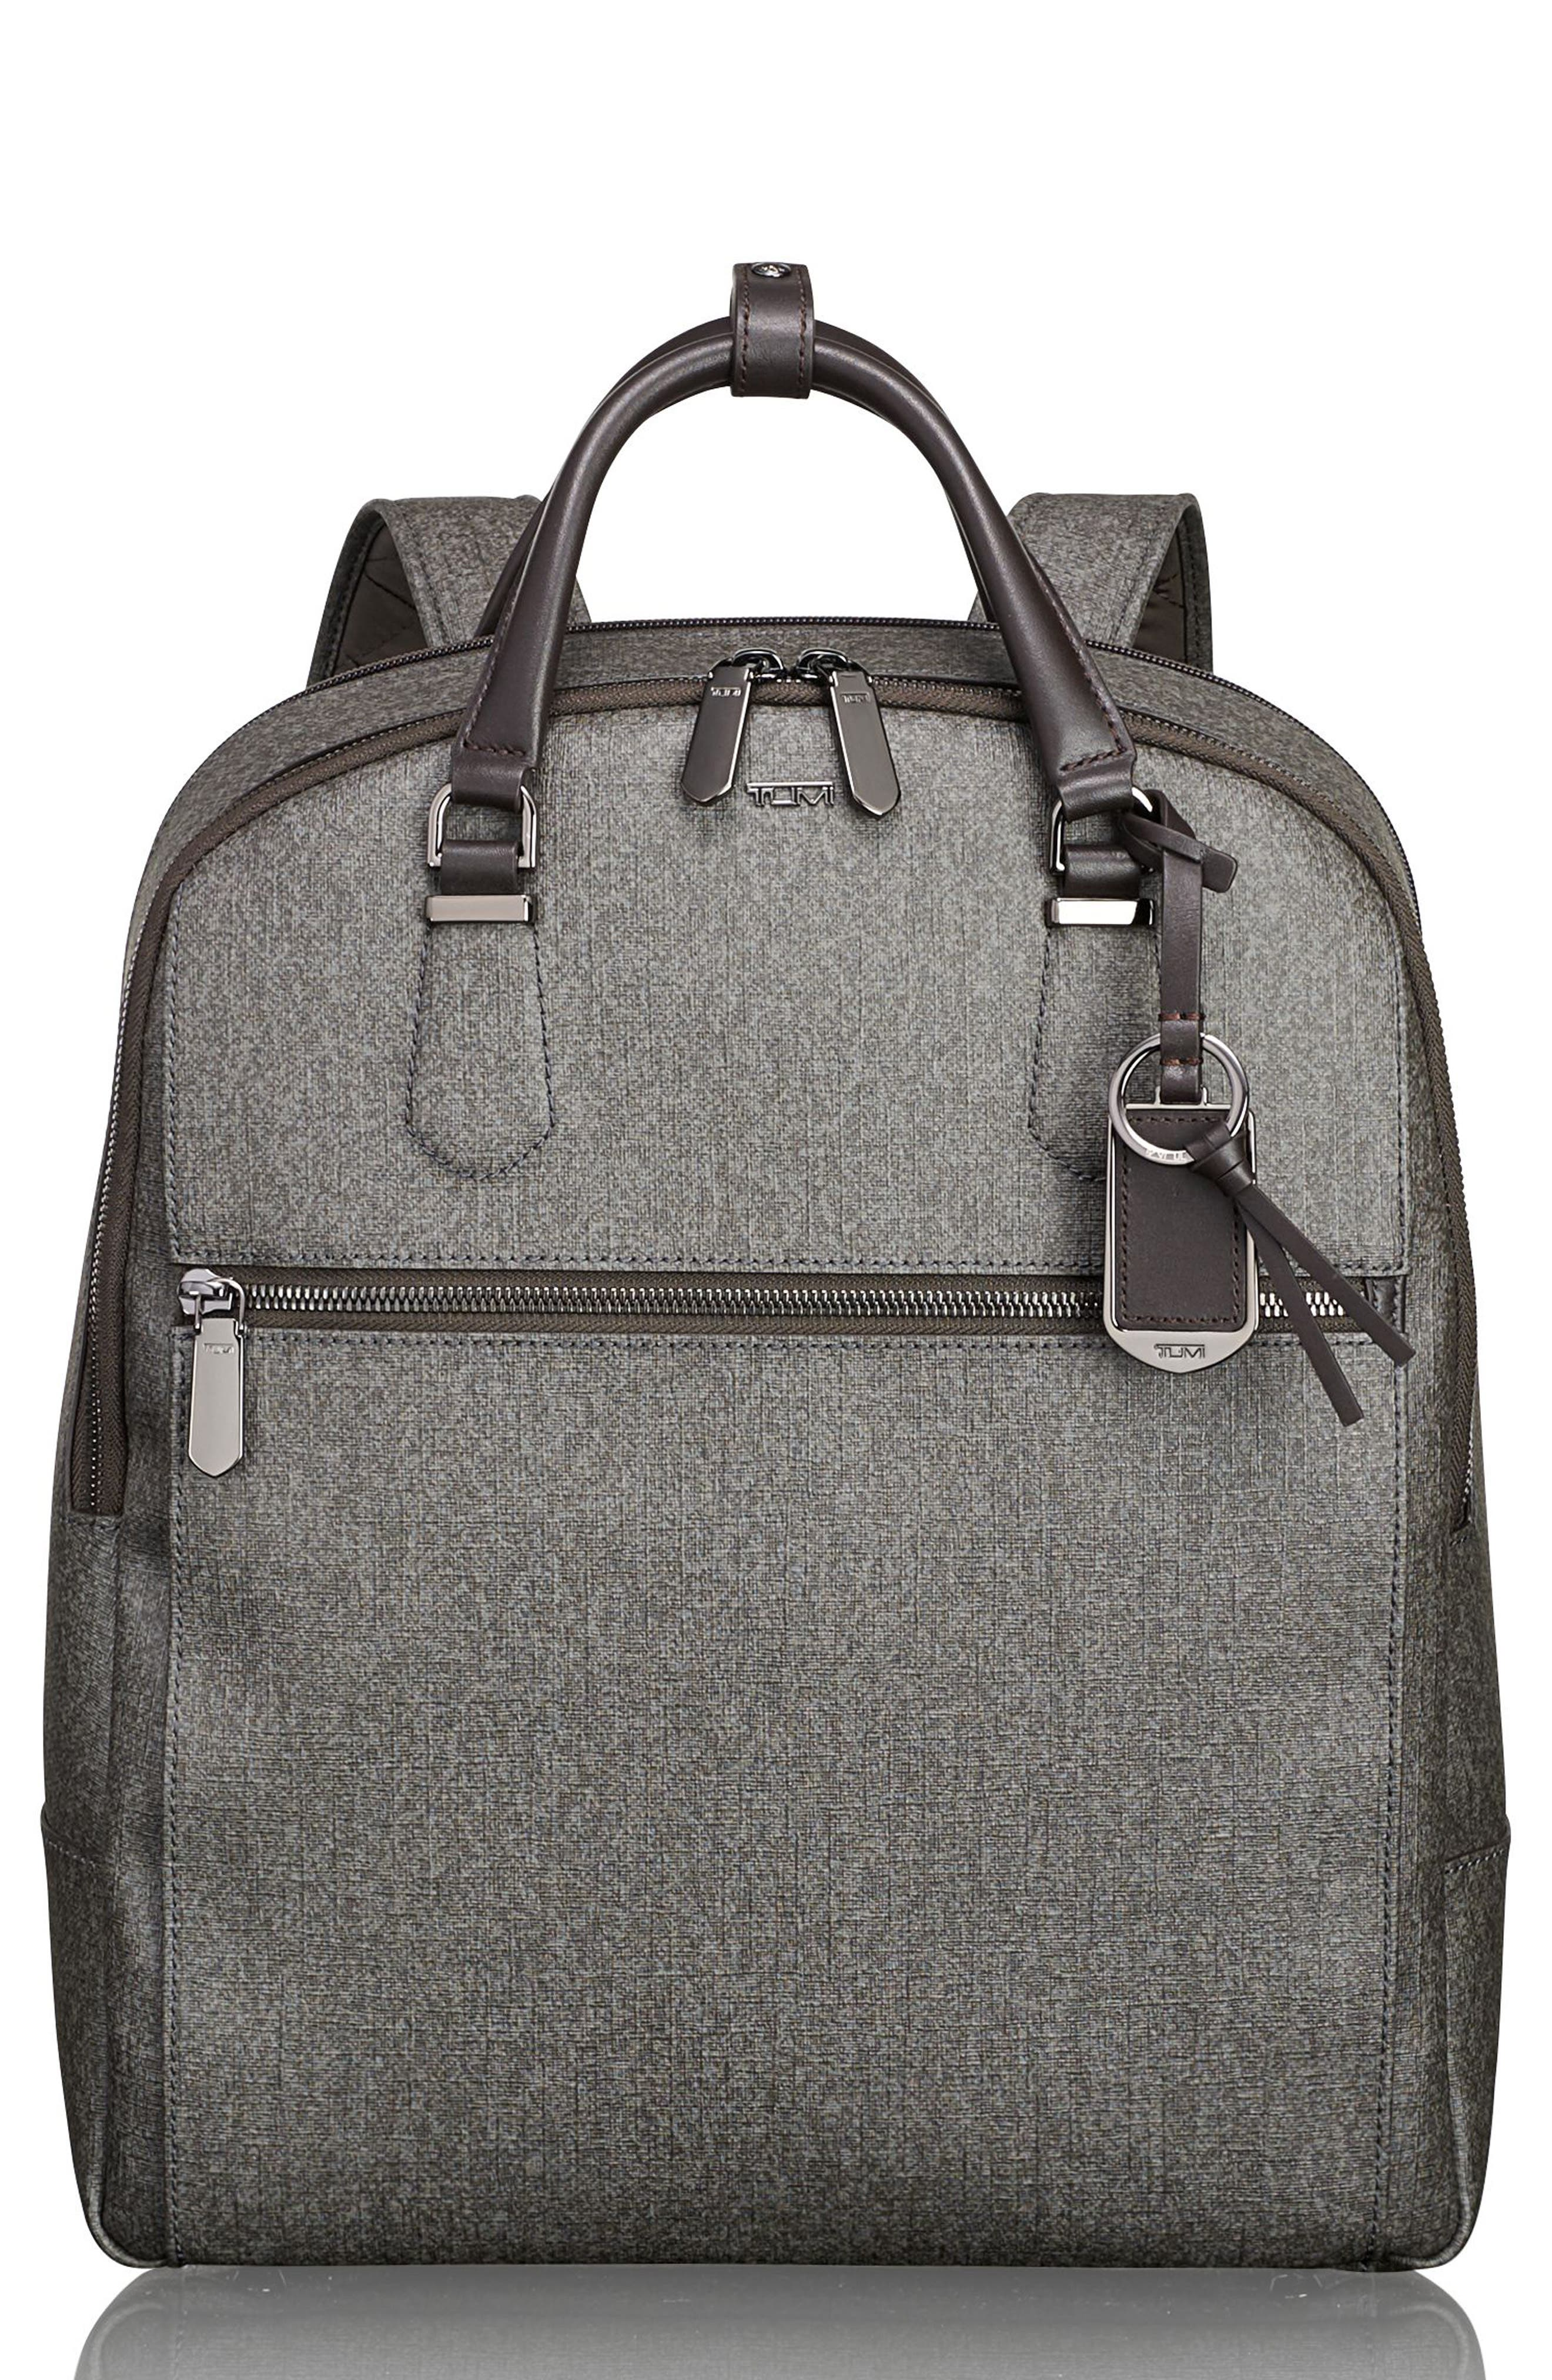 Stanton Orion Coated Canvas Backpack,                             Main thumbnail 1, color,                             020